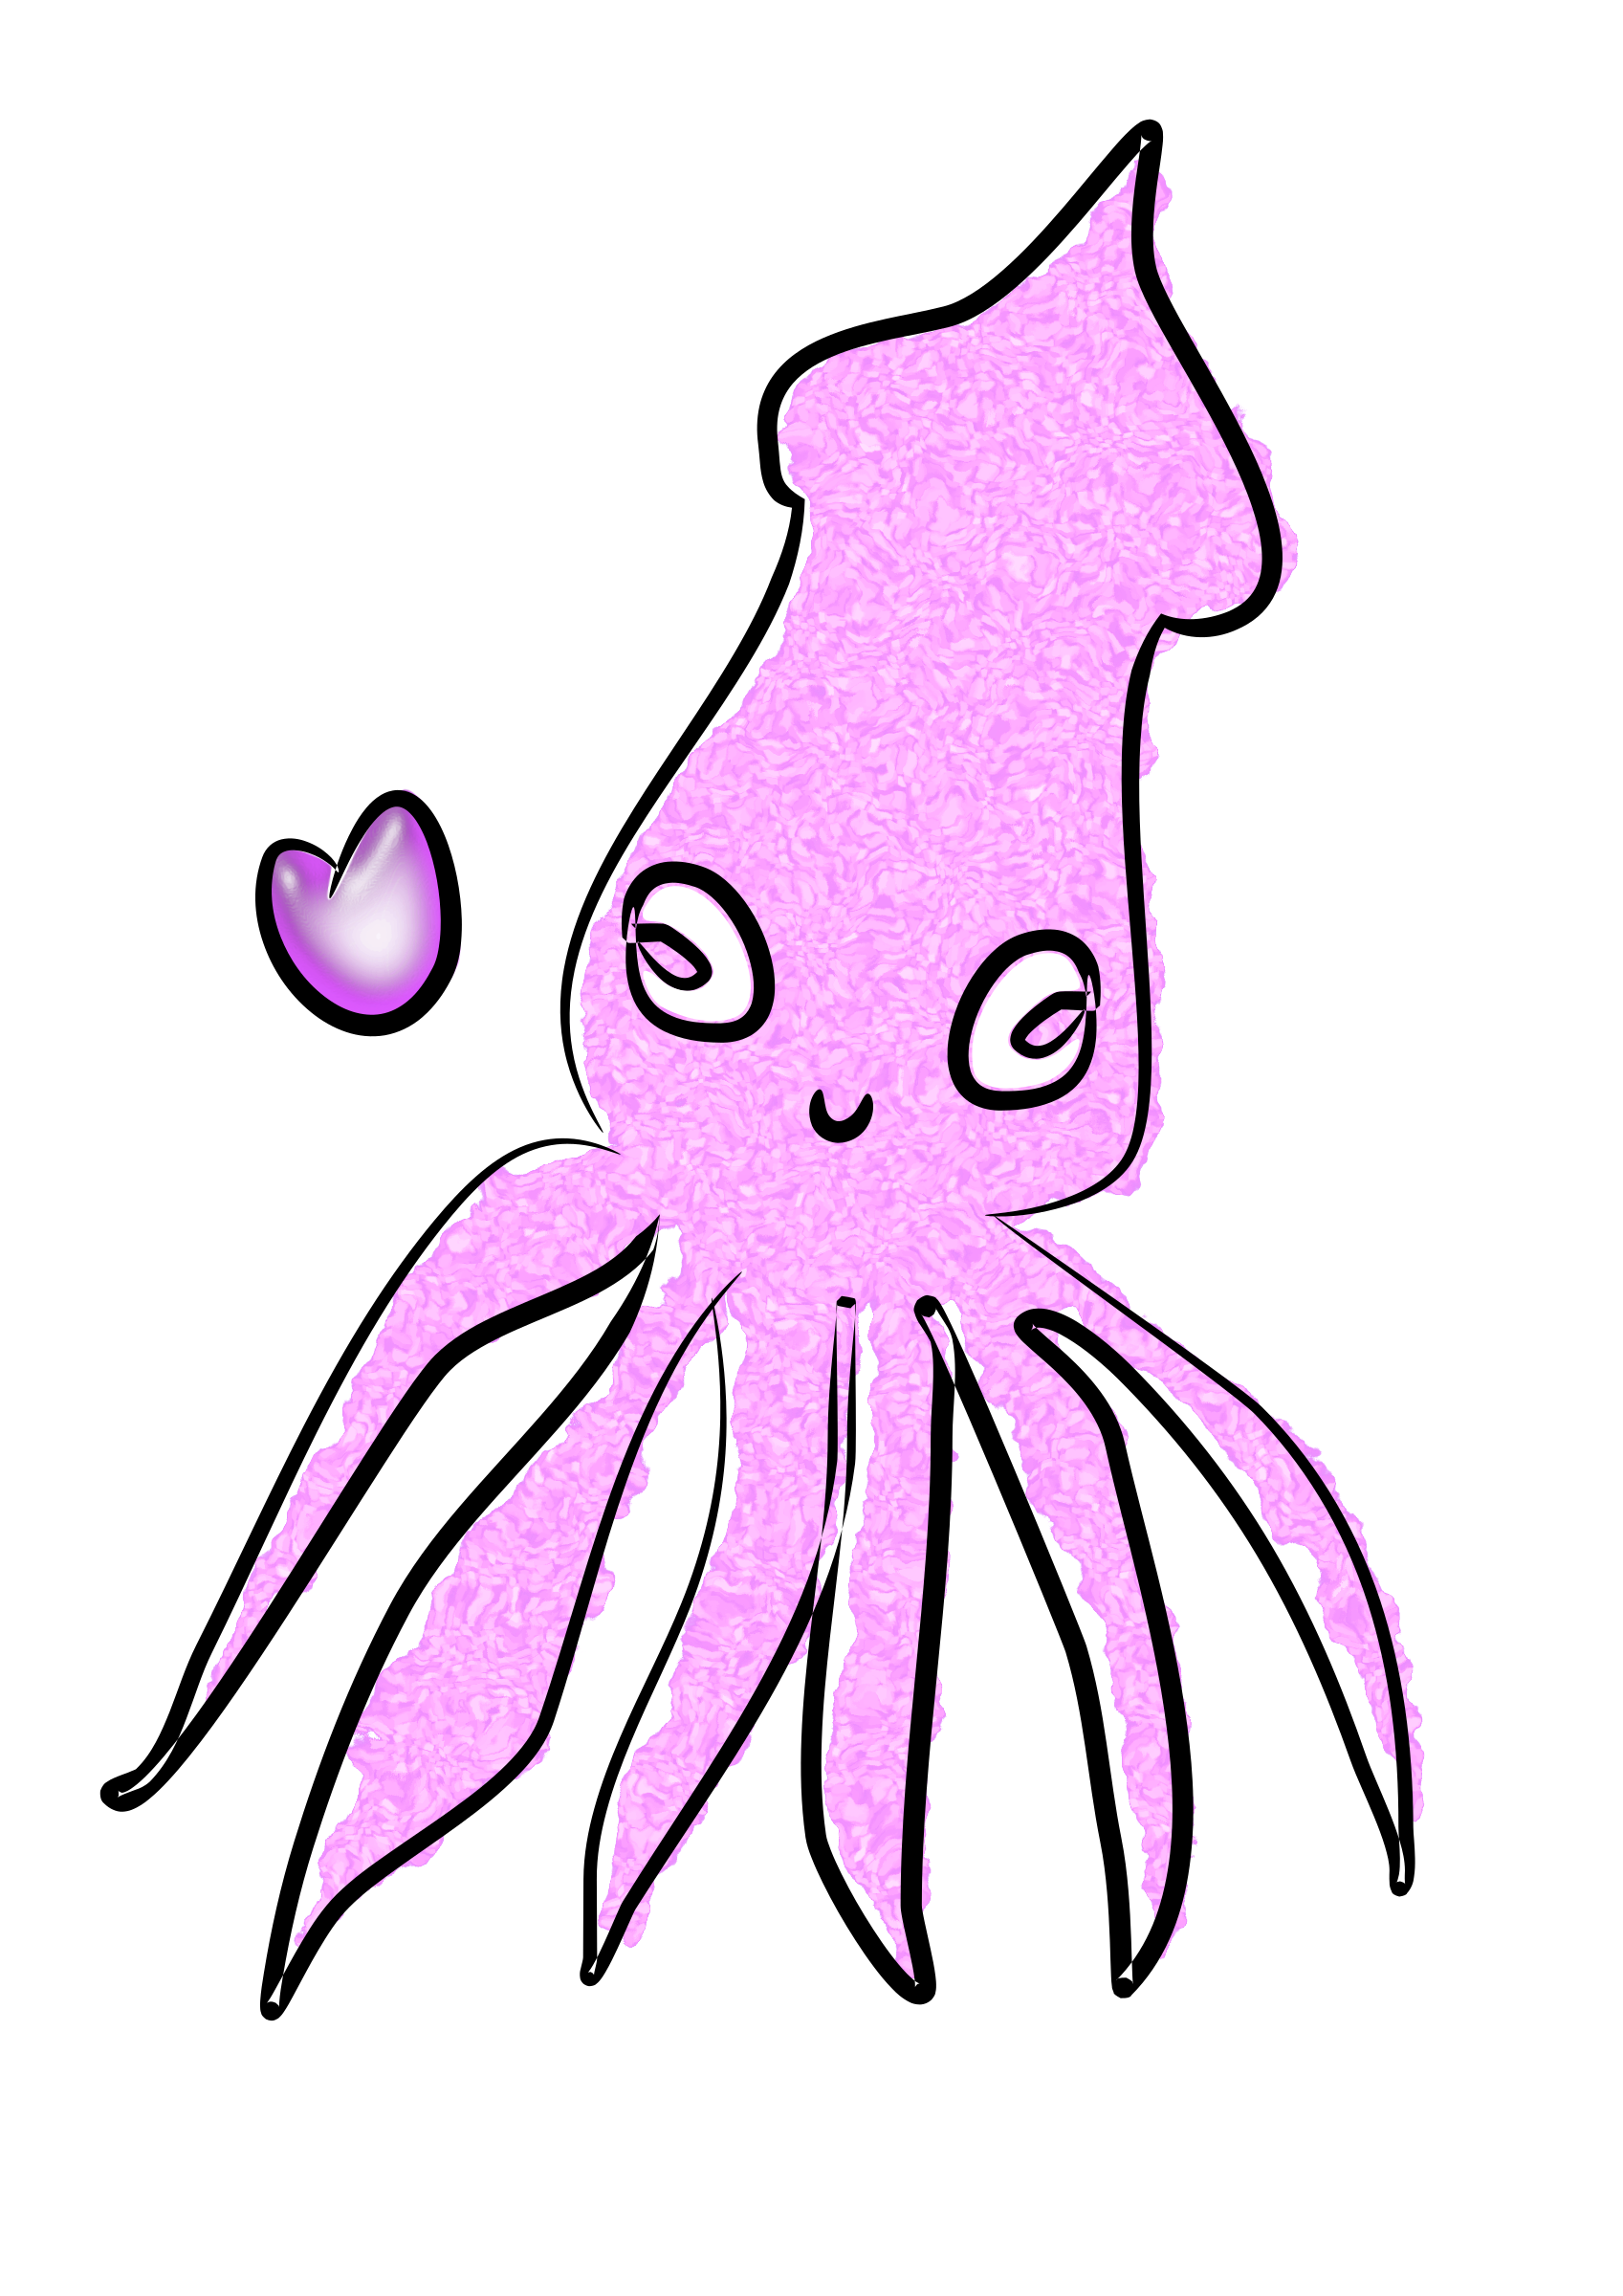 Loving Squid by holyseamonkeys